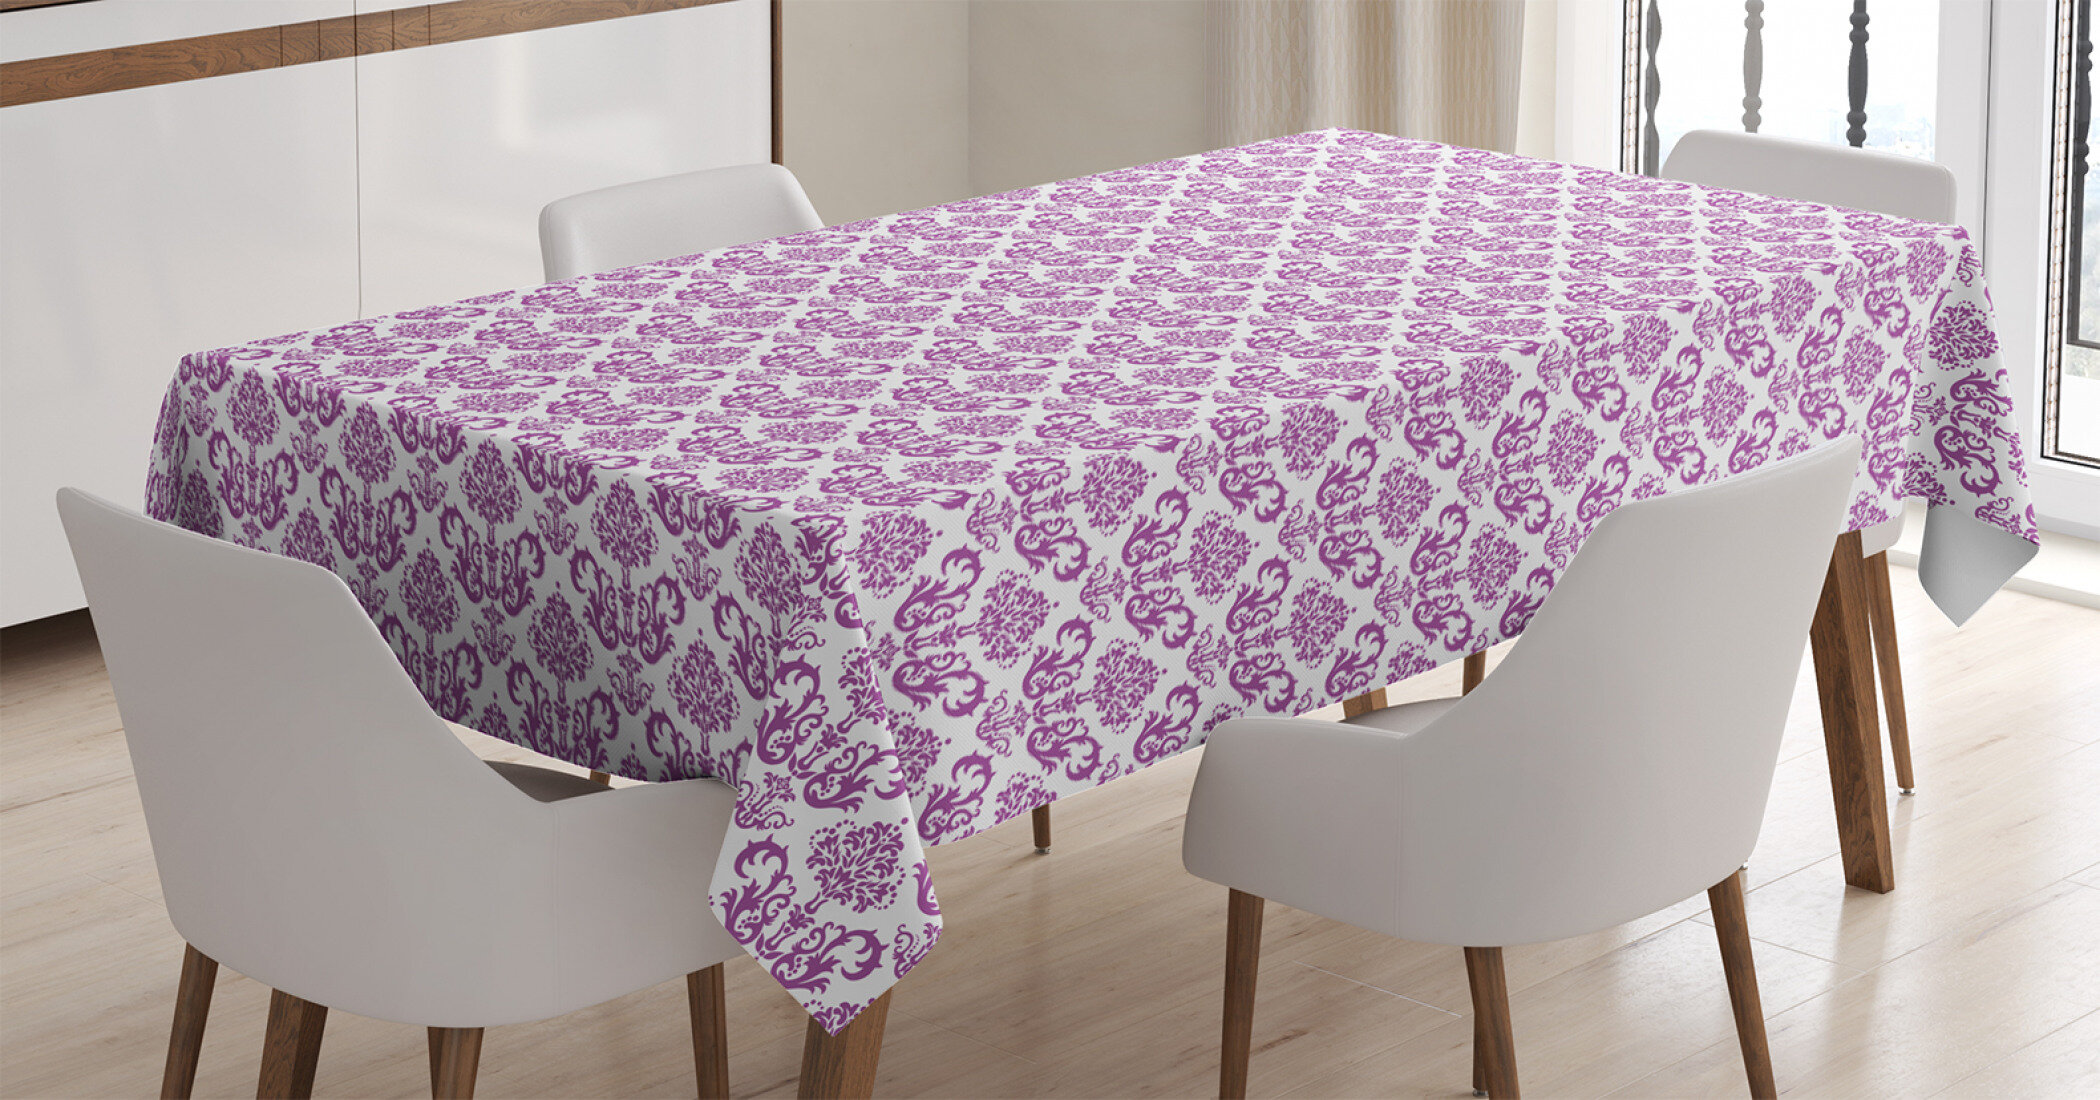 East Urban Home Ambesonne Victorian Tablecloth Floral Lavender Color Bloom Blossoms Flowering Continuous Classy Design Print Rectangular Table Cover For Dining Room Kitchen Decor 60 X 90 Fuchsia Wayfair